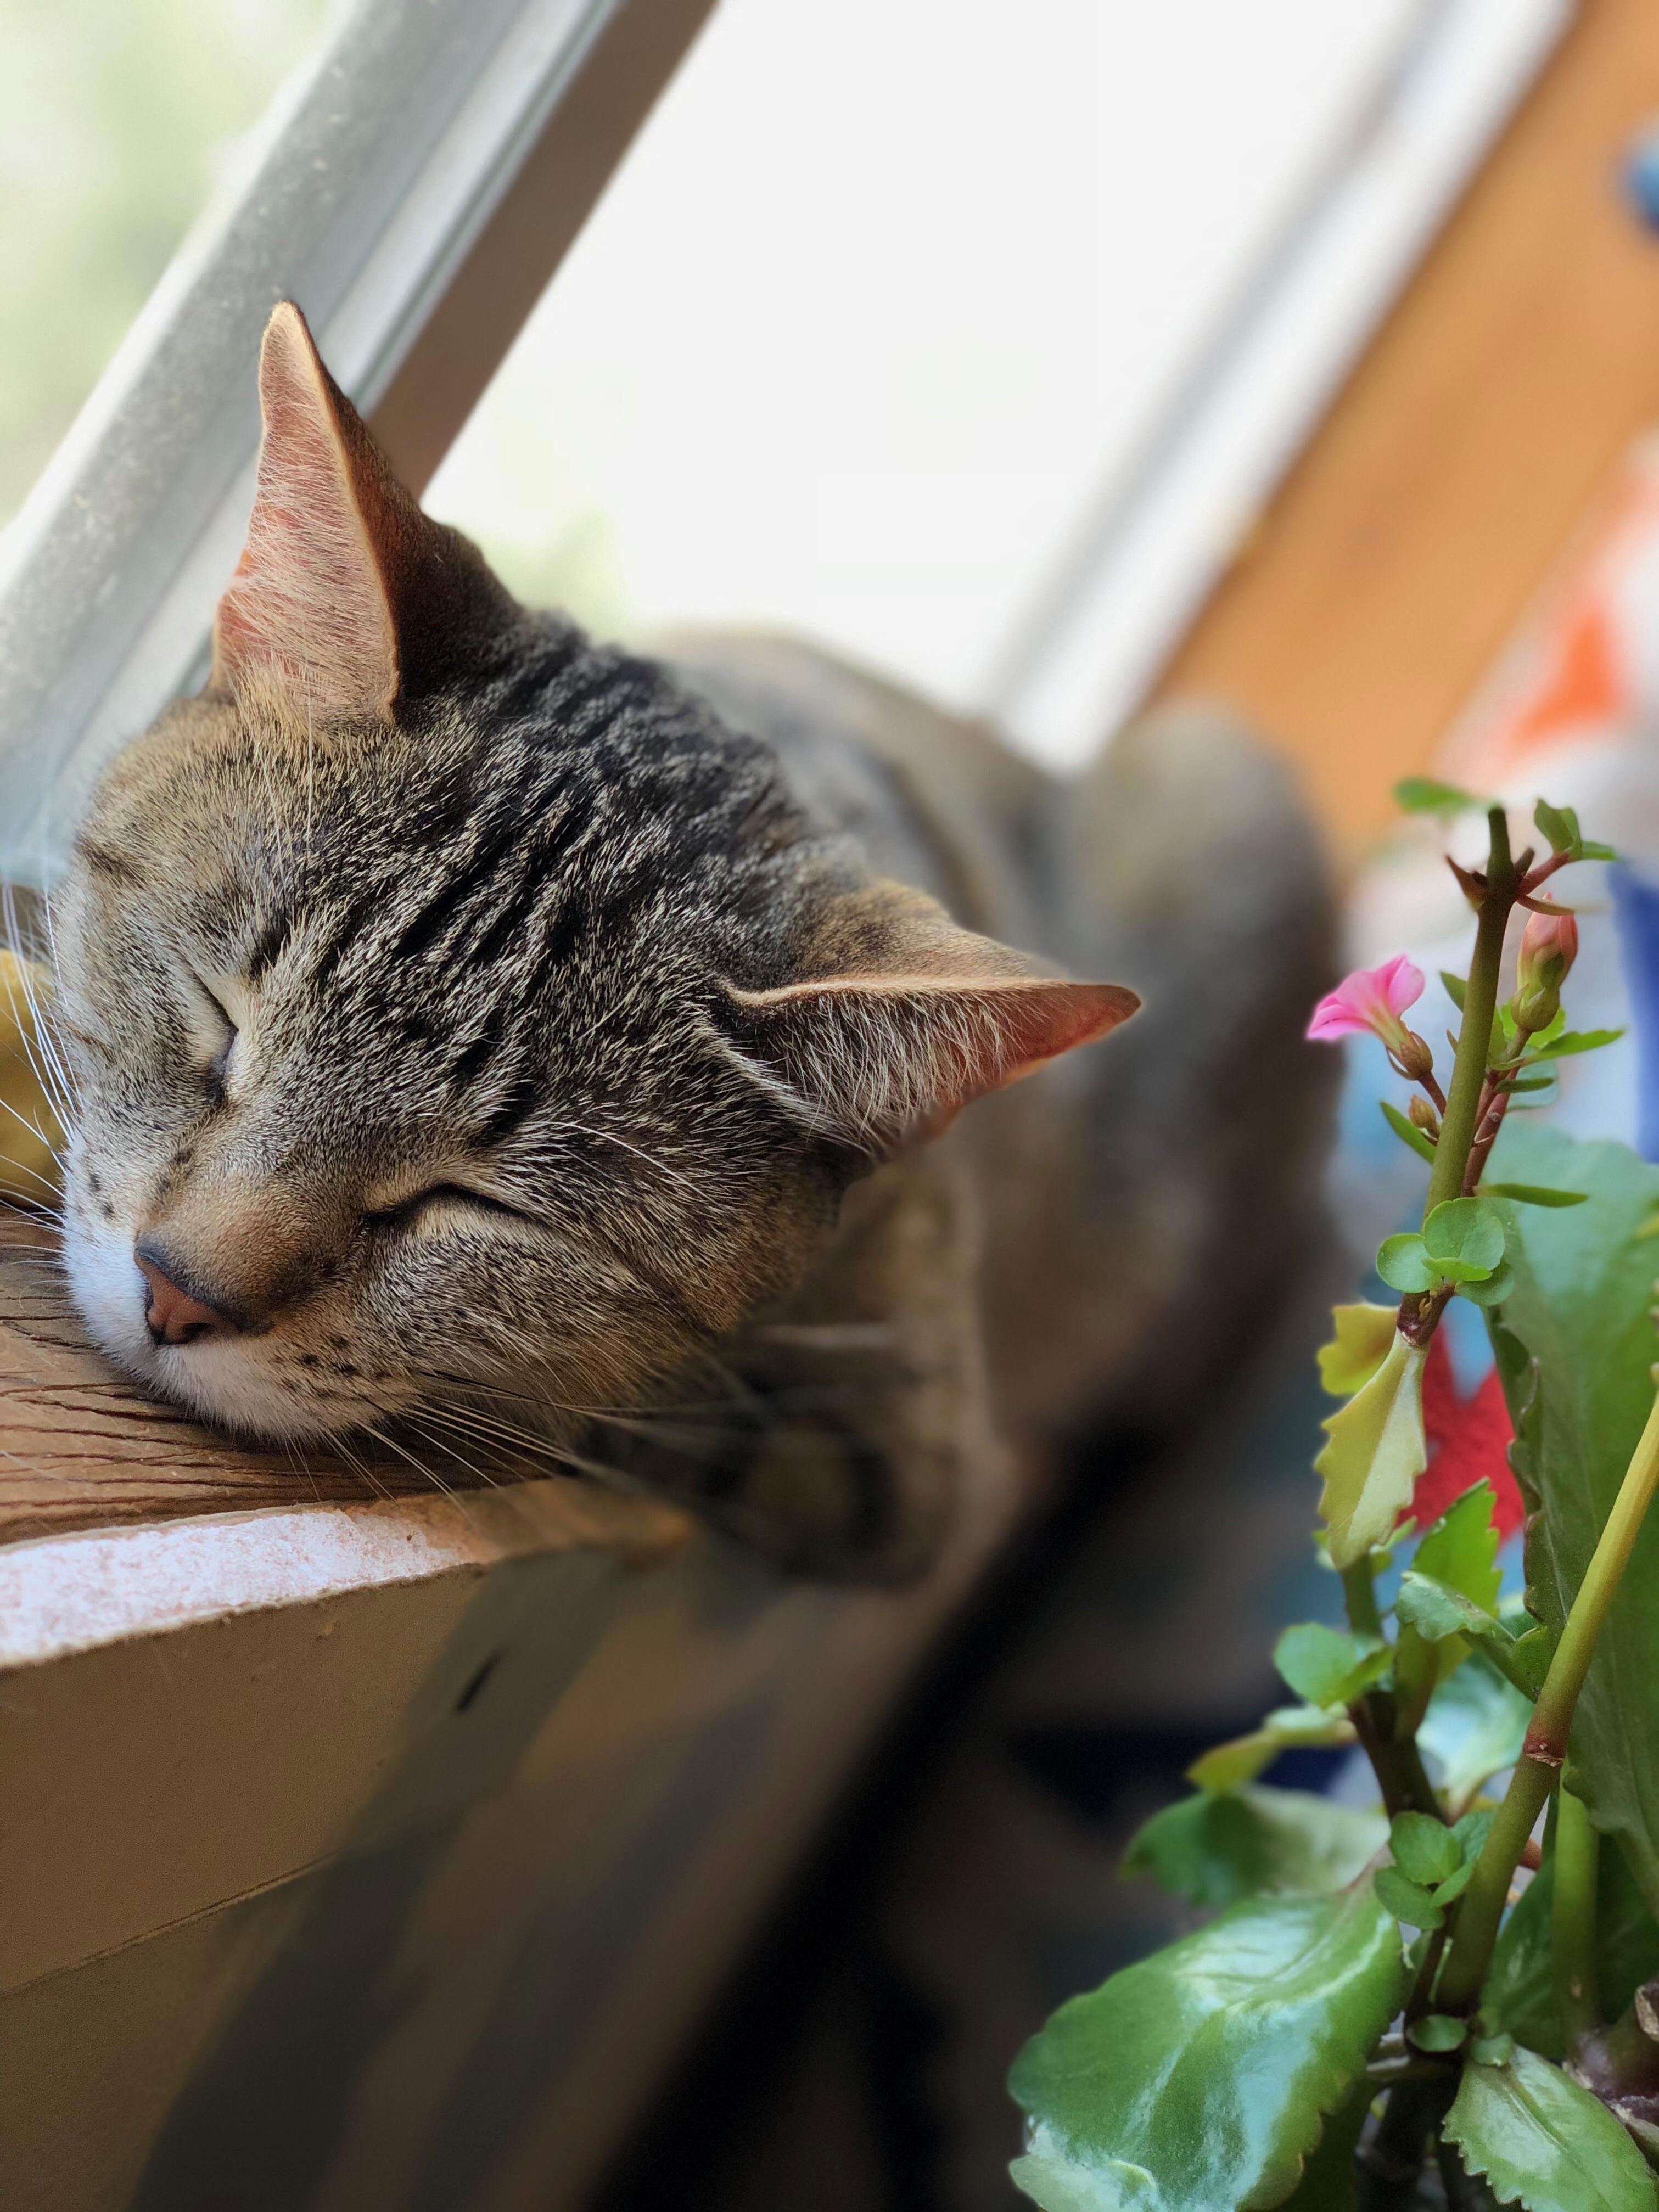 Taking a little nap in the window.